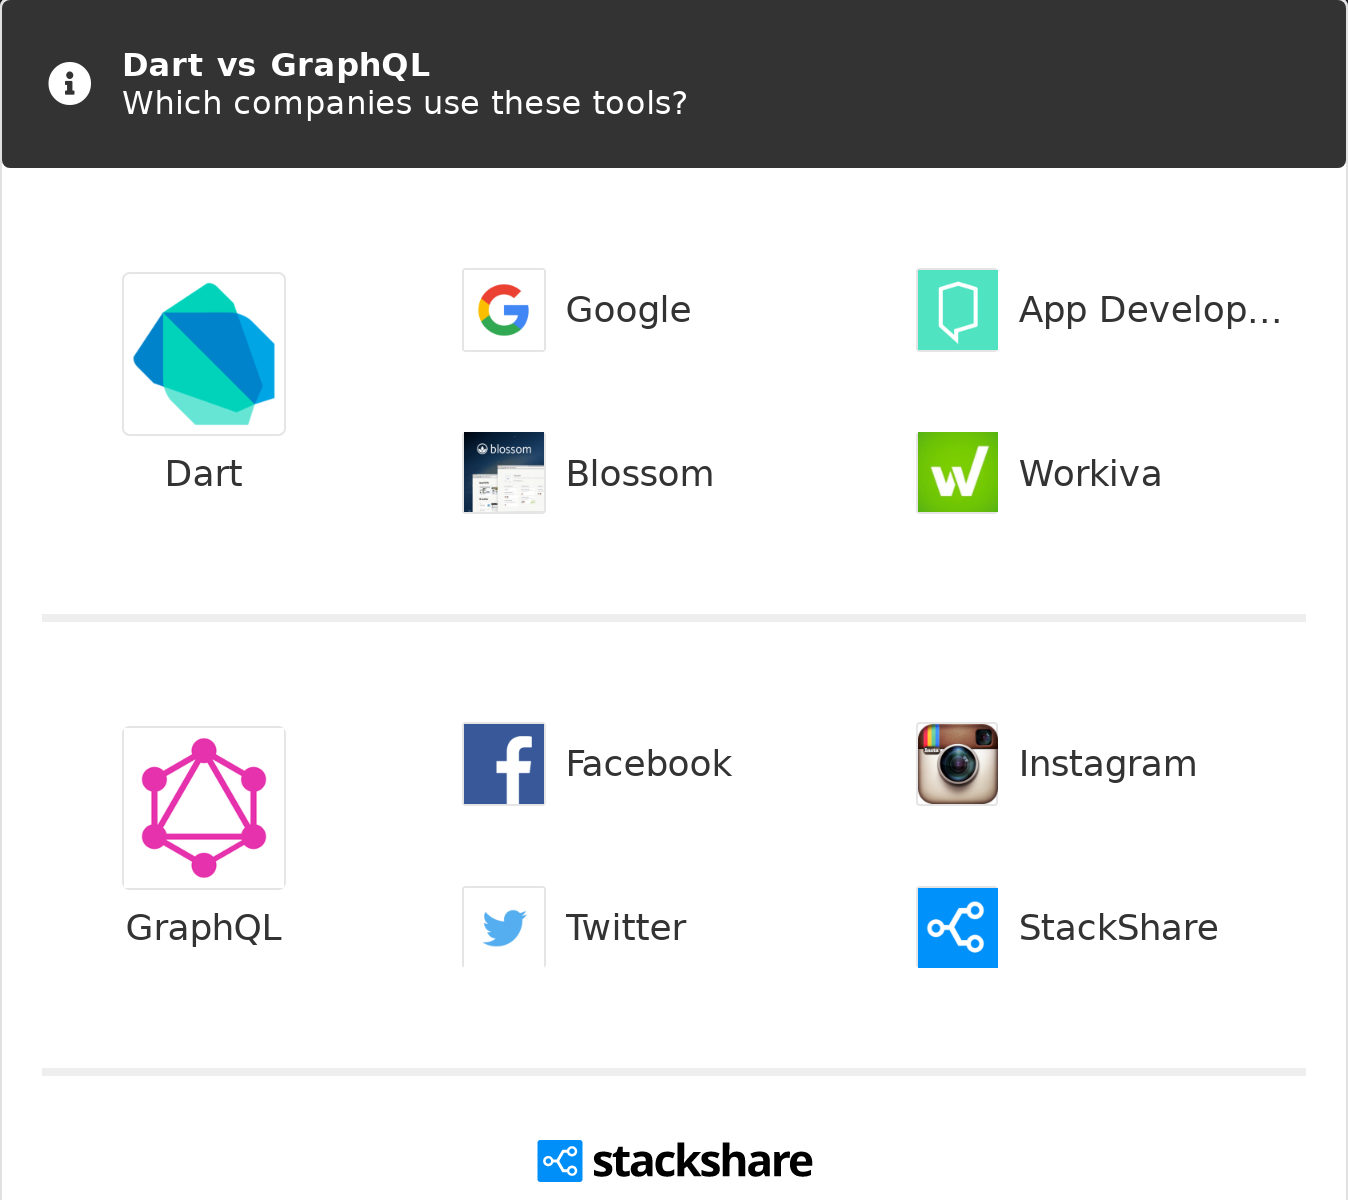 Dart vs GraphQL | What are the differences?